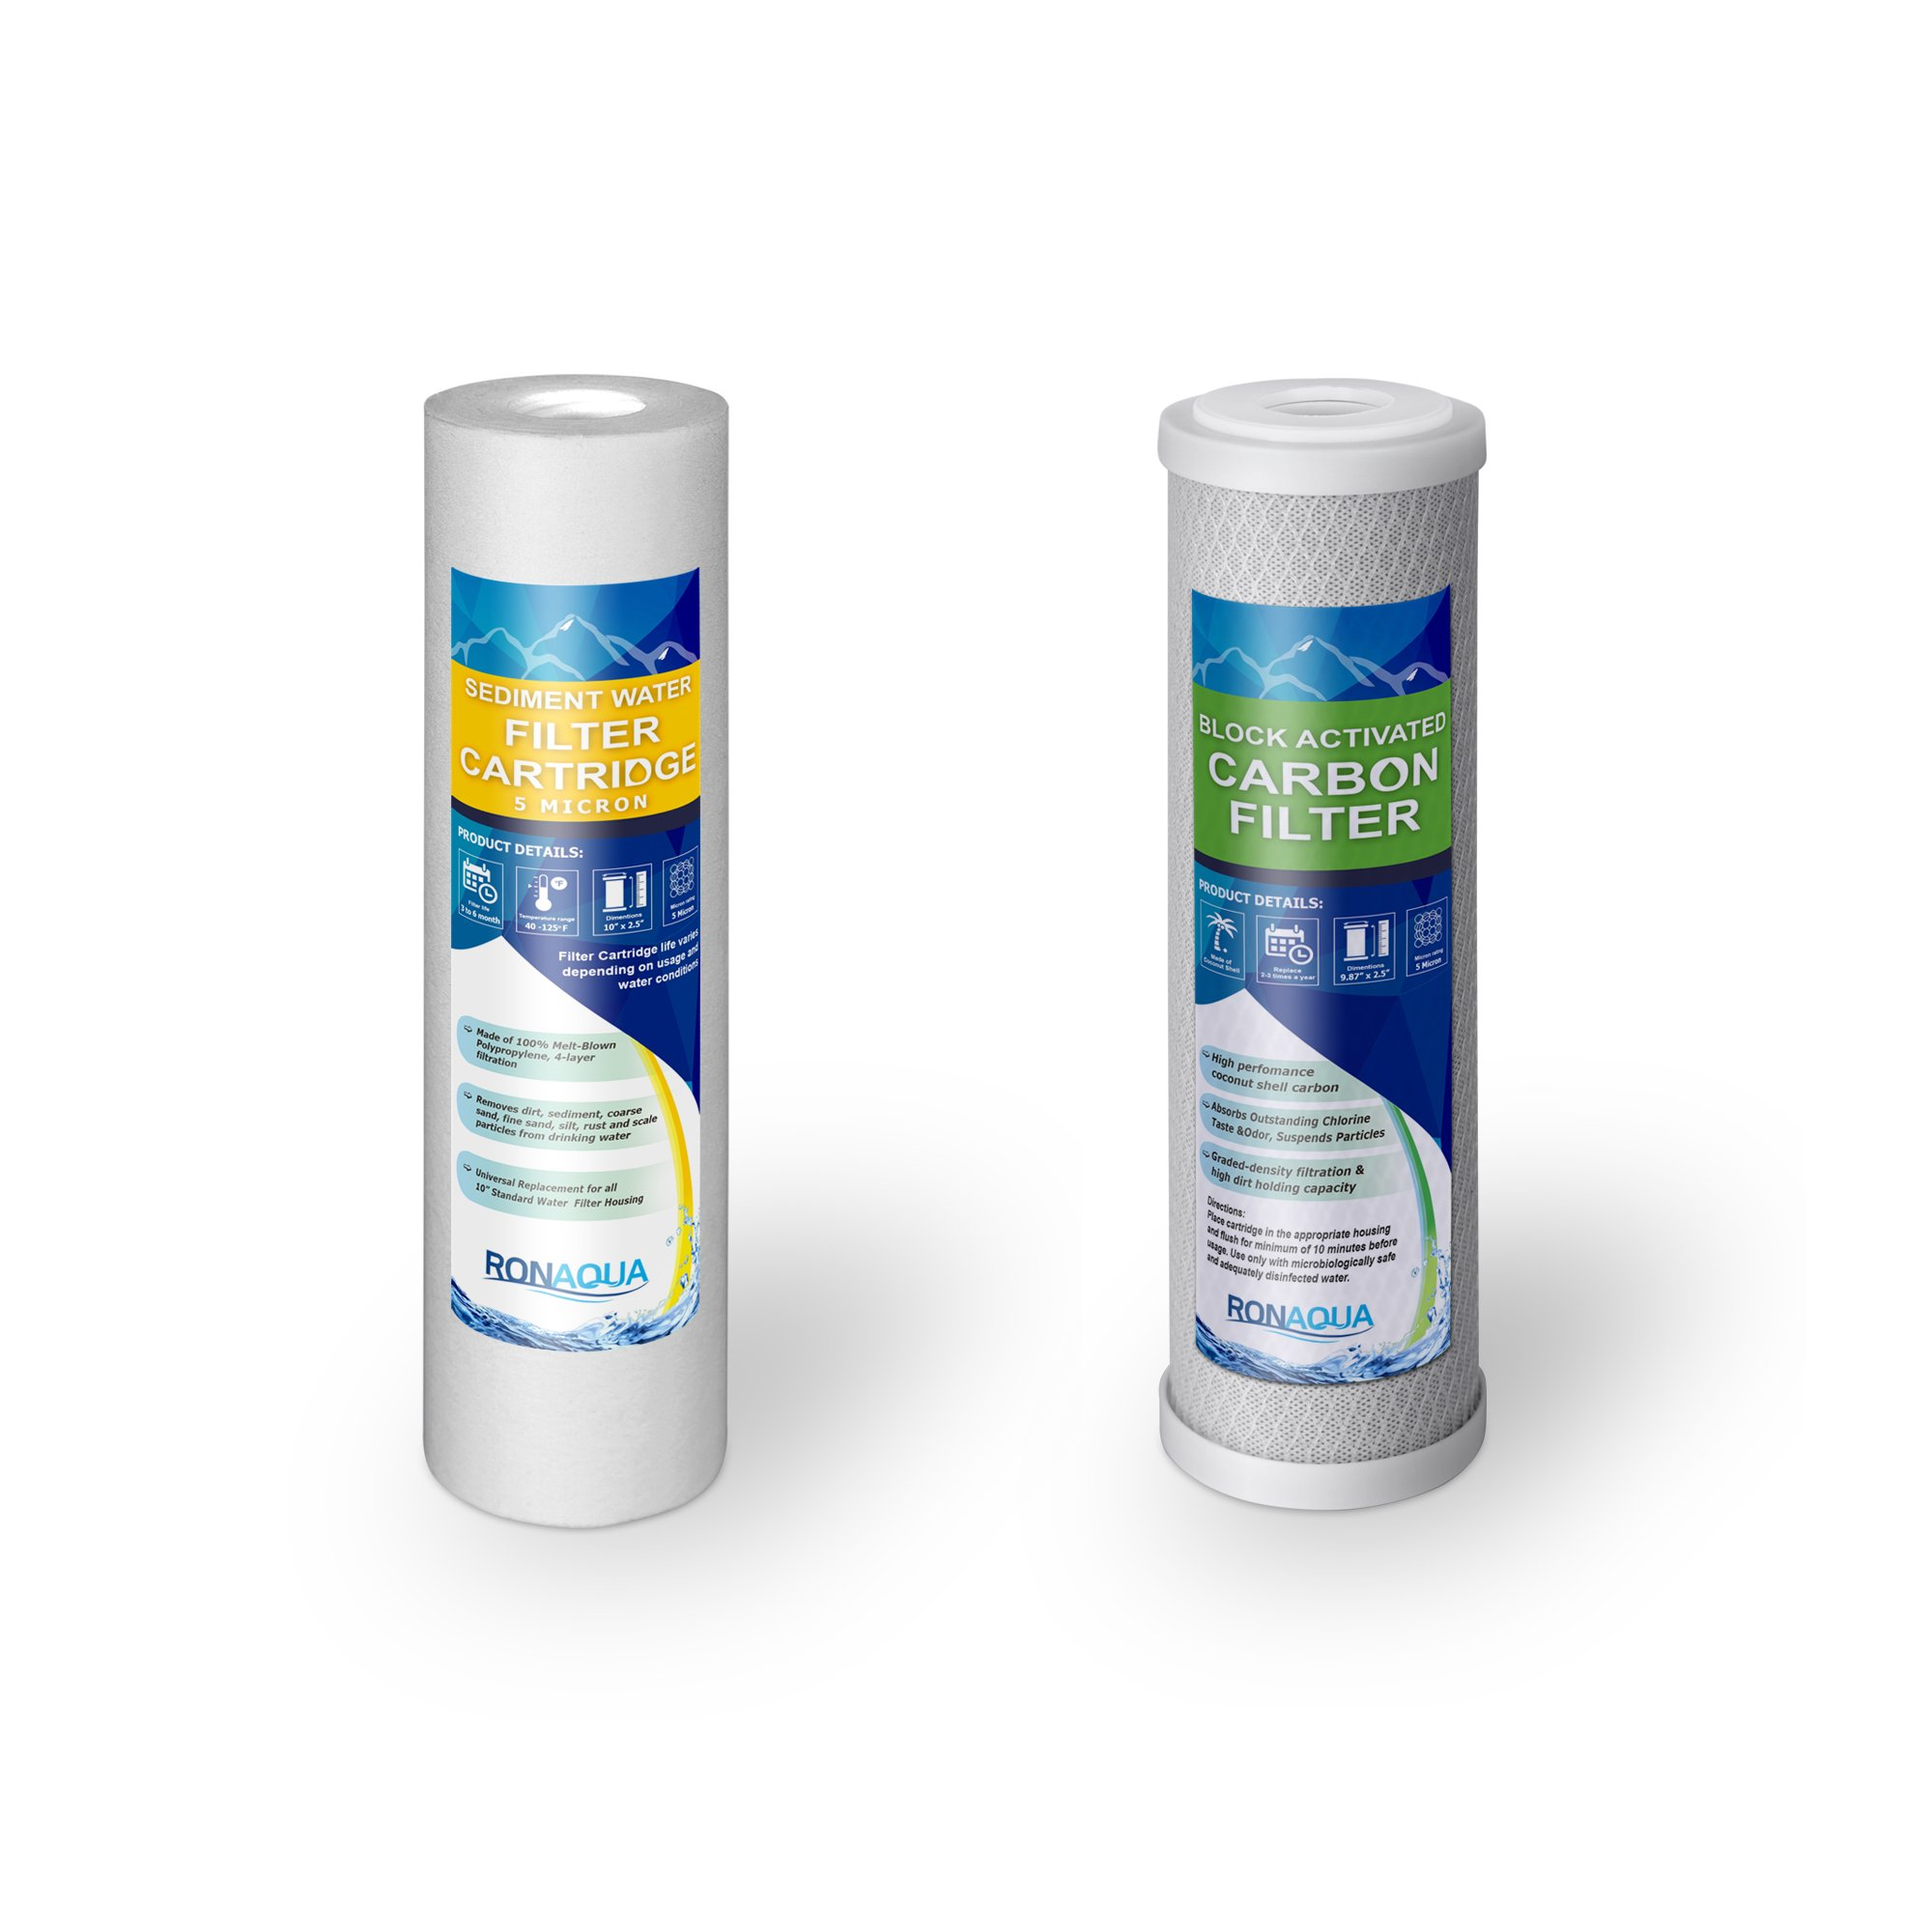 Ronaqua Countertop Drinking Water Filtration System Removes Chlorine (Replacement Filters for 2 Stage System)